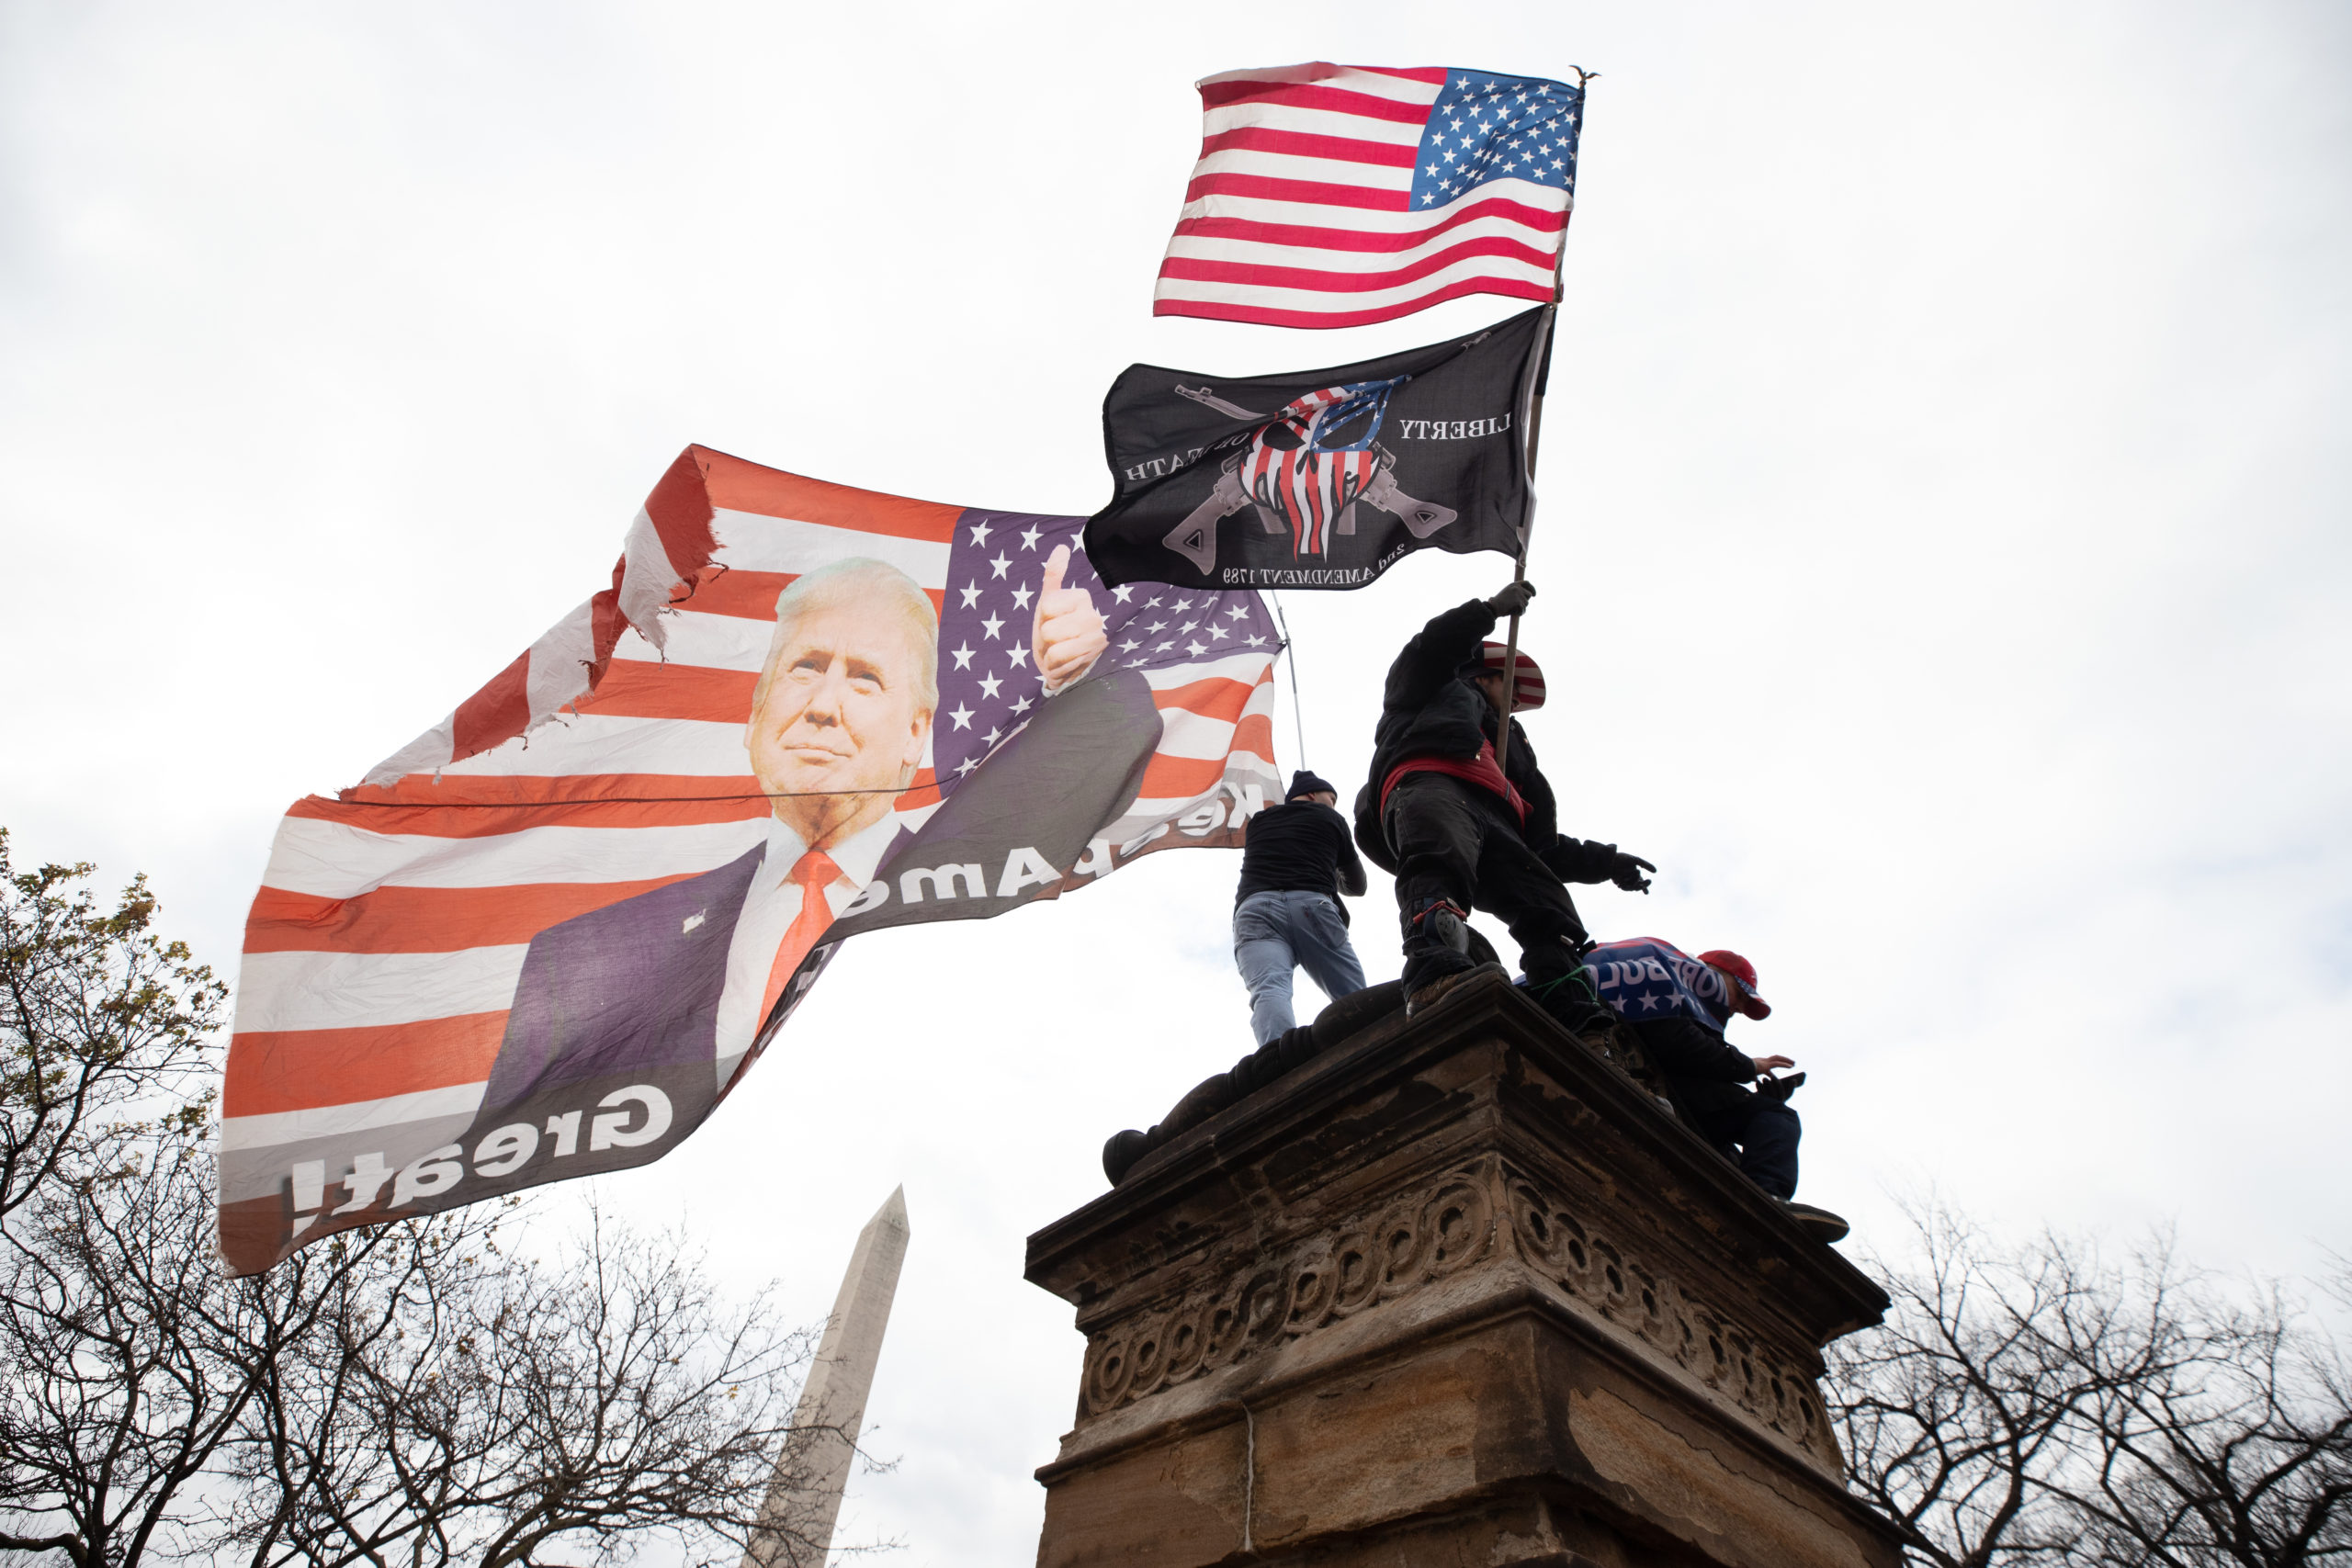 Supporters of President Donald Trump scaled various landmarks around the city attempting to get a better angle of the stage before his speech in Washington, D.C. on Jan. 6, 2021. (Kaylee Greenlee - Daily Caller News Foundation)